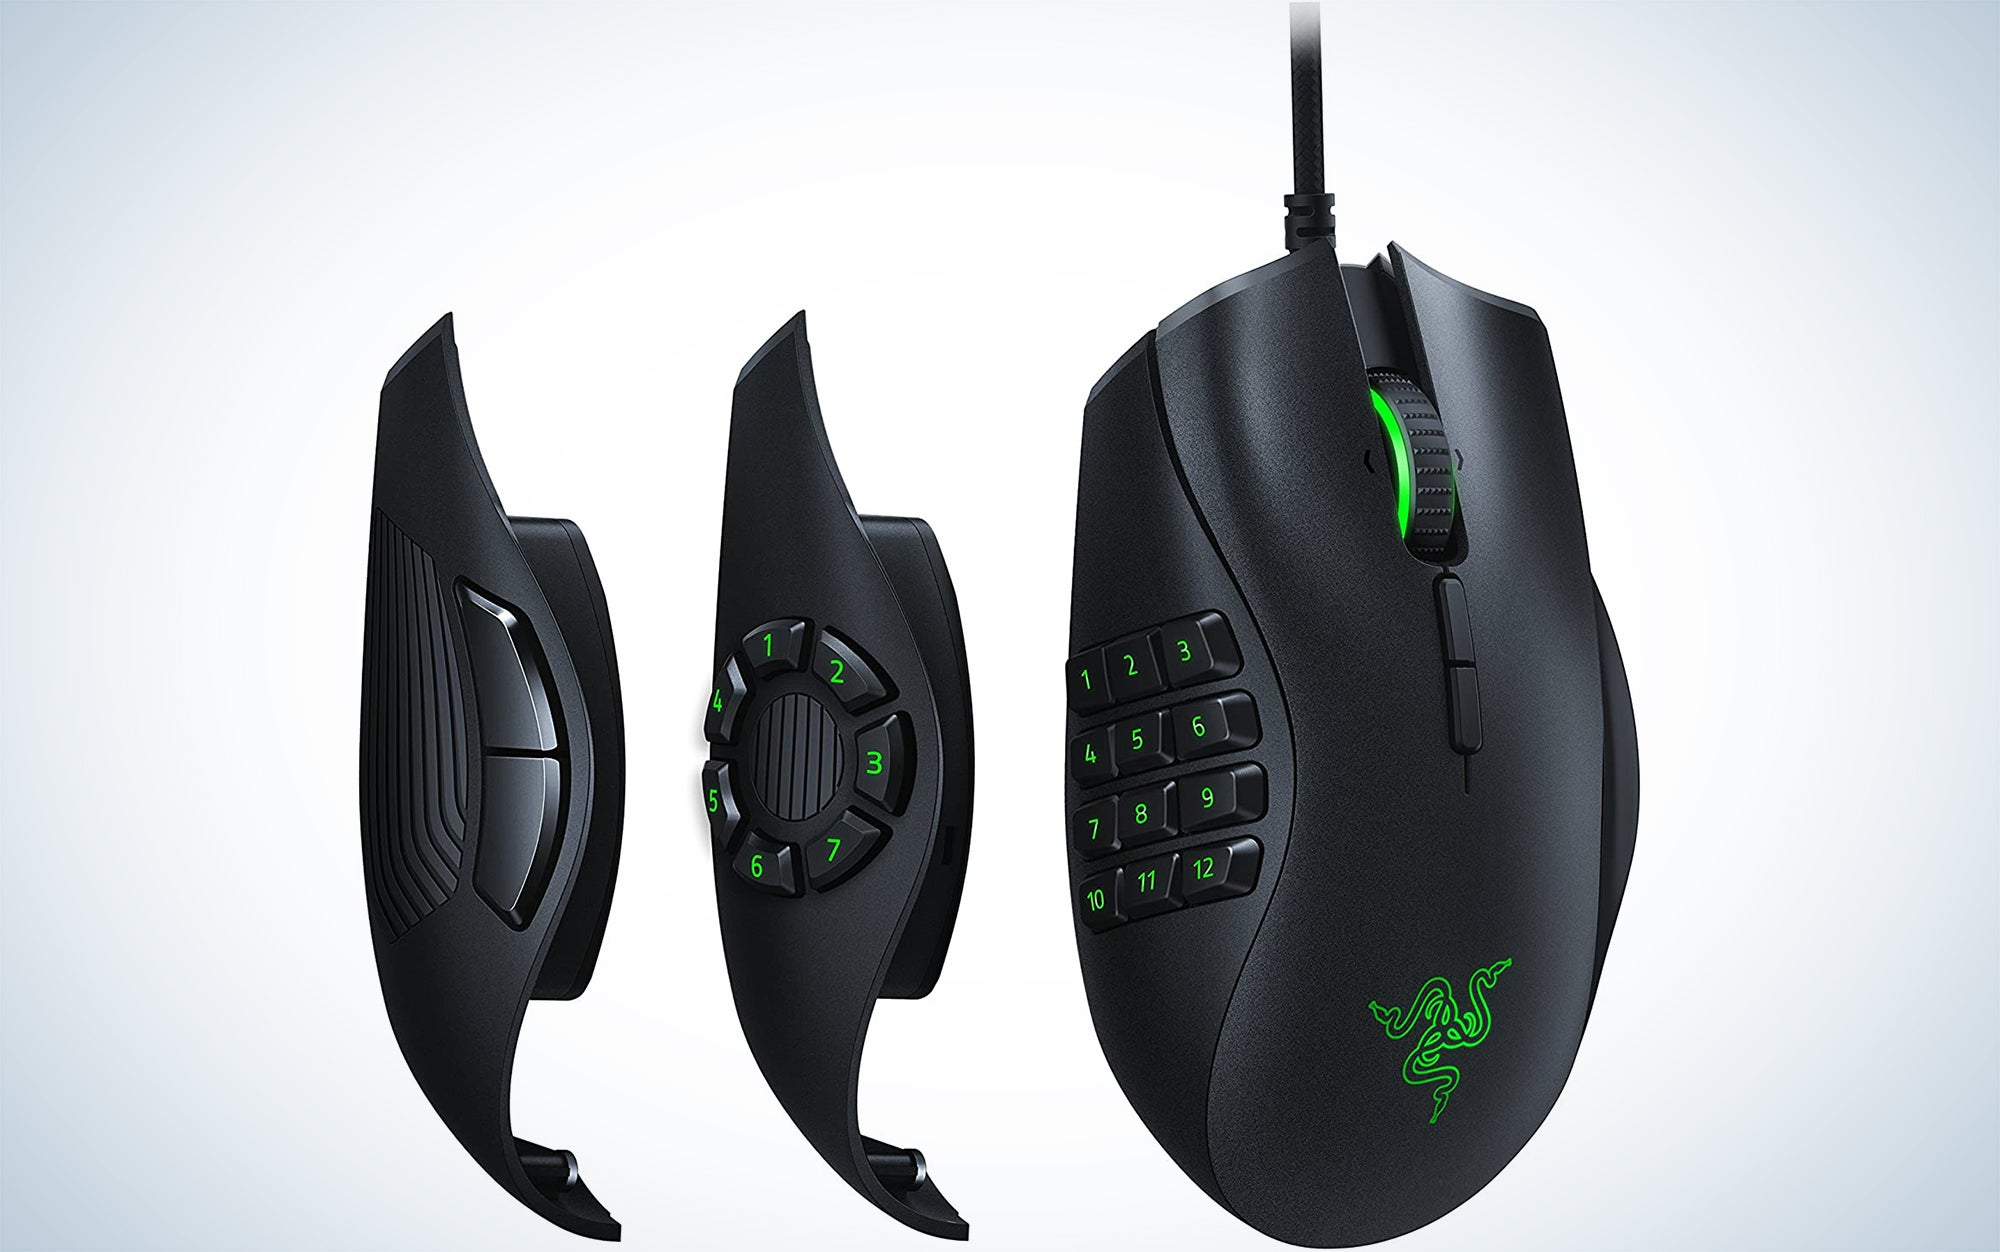 Razer Naga Trinity Gaming Mouse: 16,000 DPI Optical Sensor - Chroma RGB Lighting - Interchangeable Side Plate w/ 2, 7, 12 Button Configurations - Mechanical Switches is a favorite among gamers.